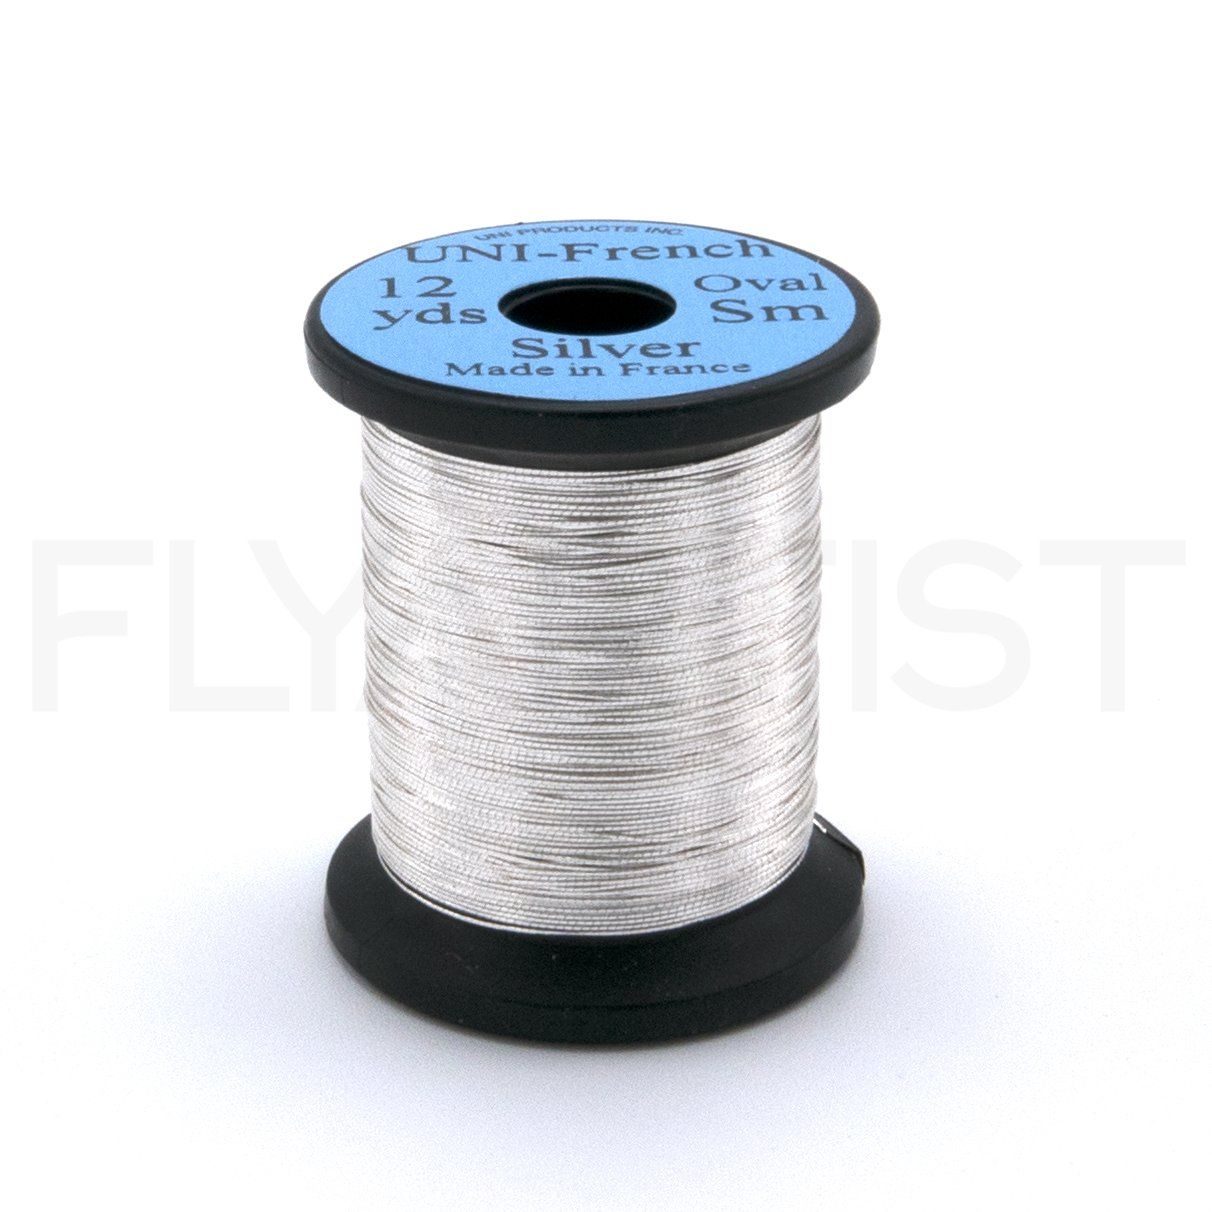 UNI French Oval Tinsel